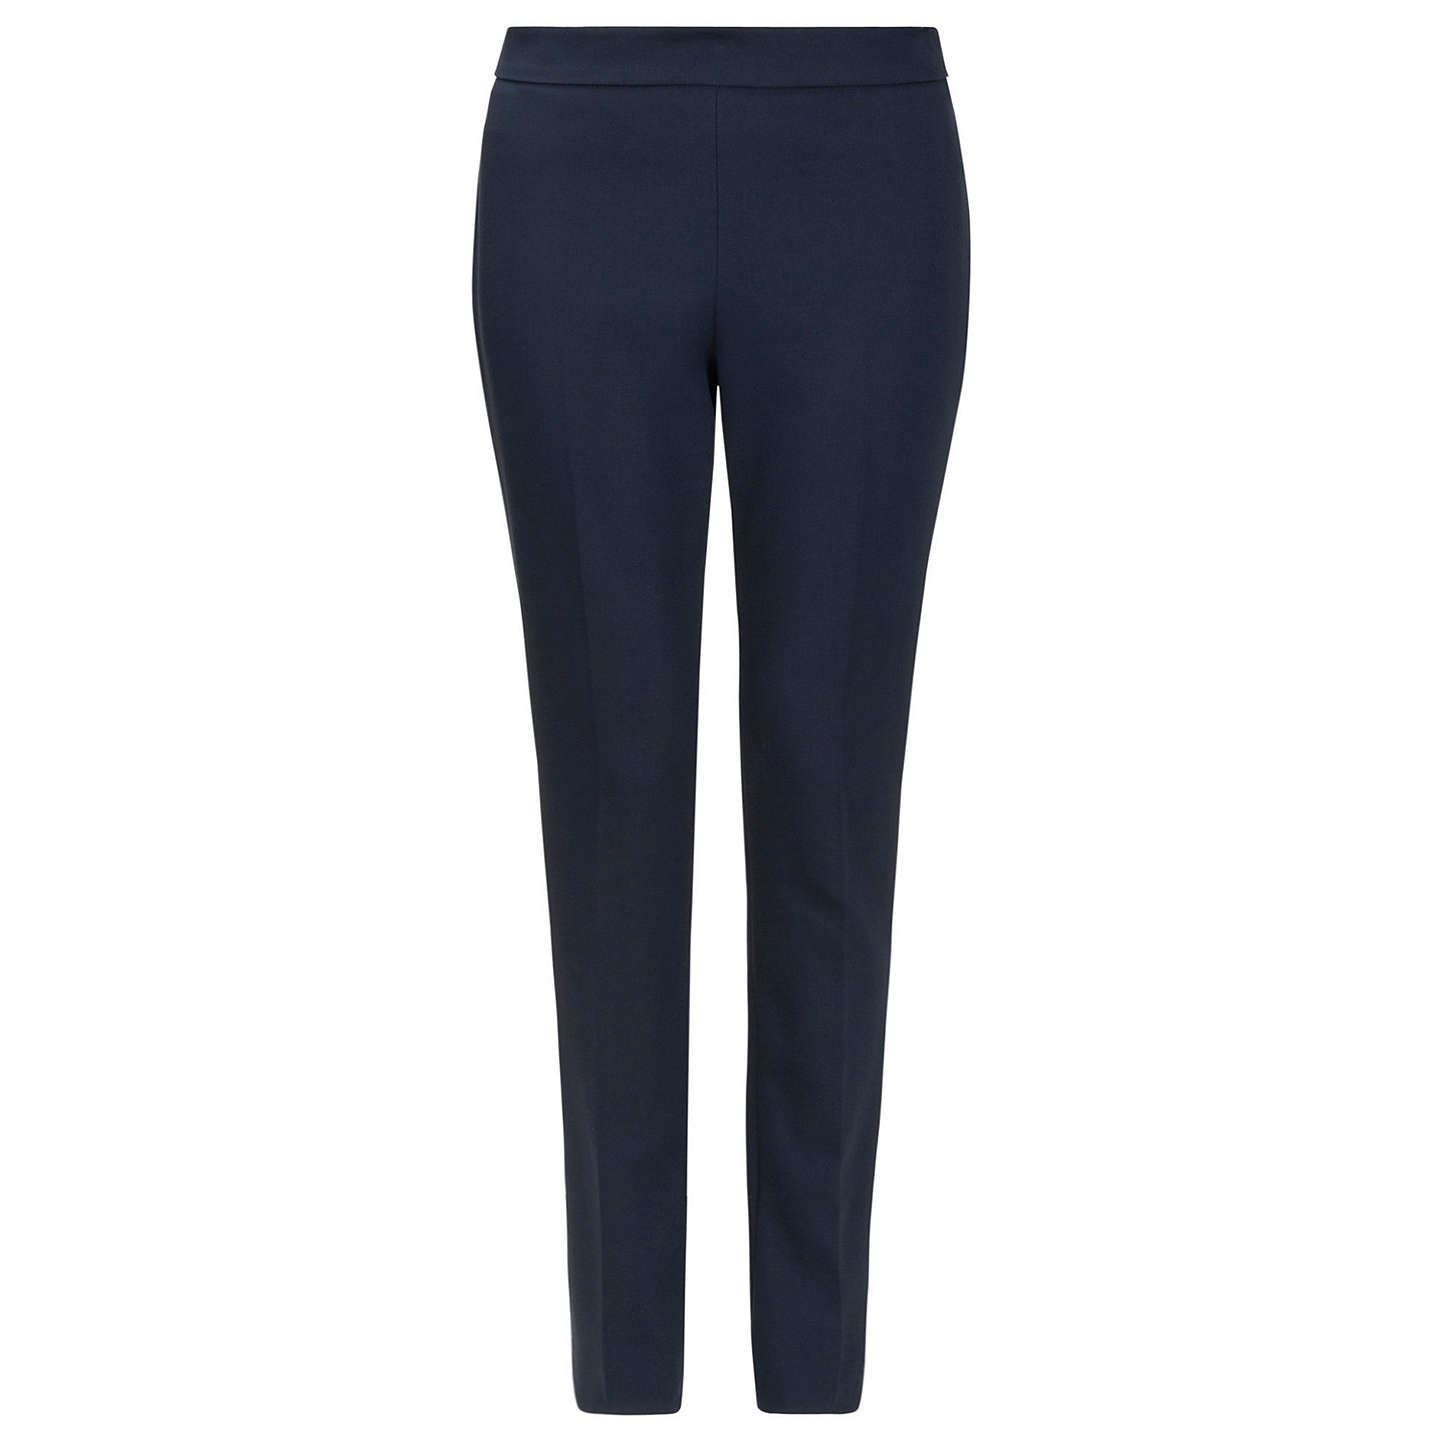 BuyHobbs Susanna Trousers, Navy, 12 Online at johnlewis.com